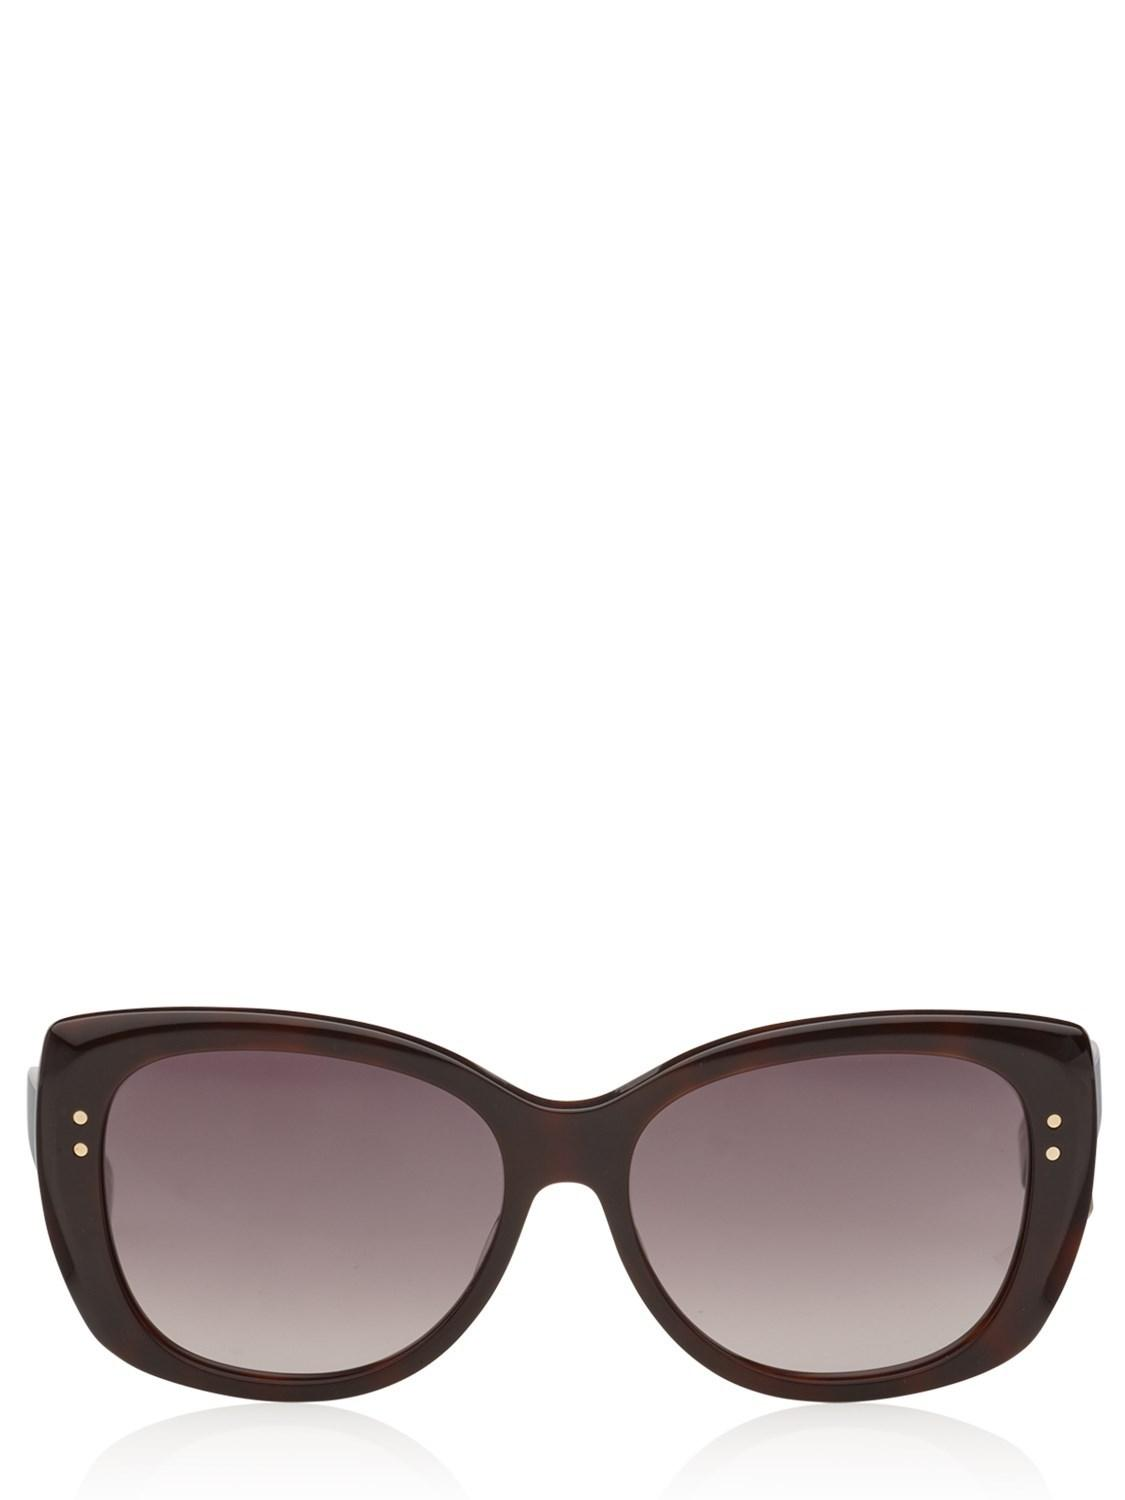 0e55d4500e05 Lyst - Marc Jacobs Sunglasses Dark Brown Marc 121 f s in Brown